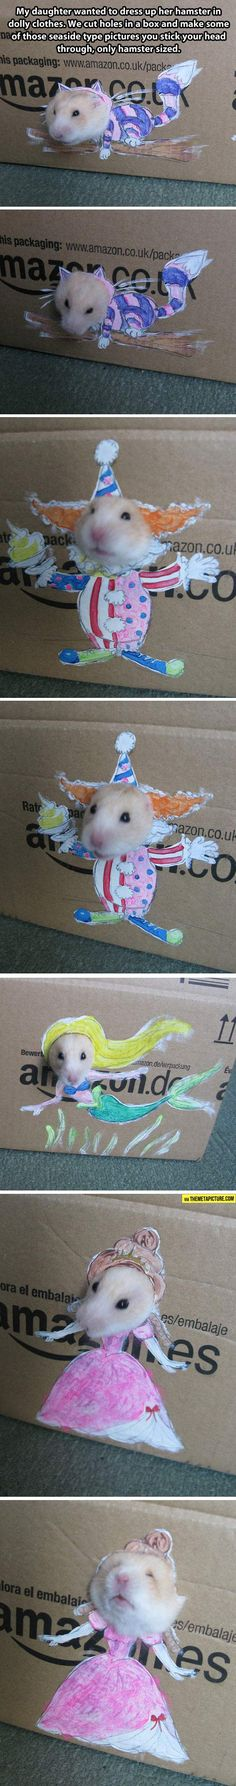 HAMSTER CLOTHES ~ what a clever idea this mom had for her daughter. It seems that she wanted to dress her hamster up in clothes and of course that's pretty impossible to do! So she and her mom created this clever idea. Such cute pictures!